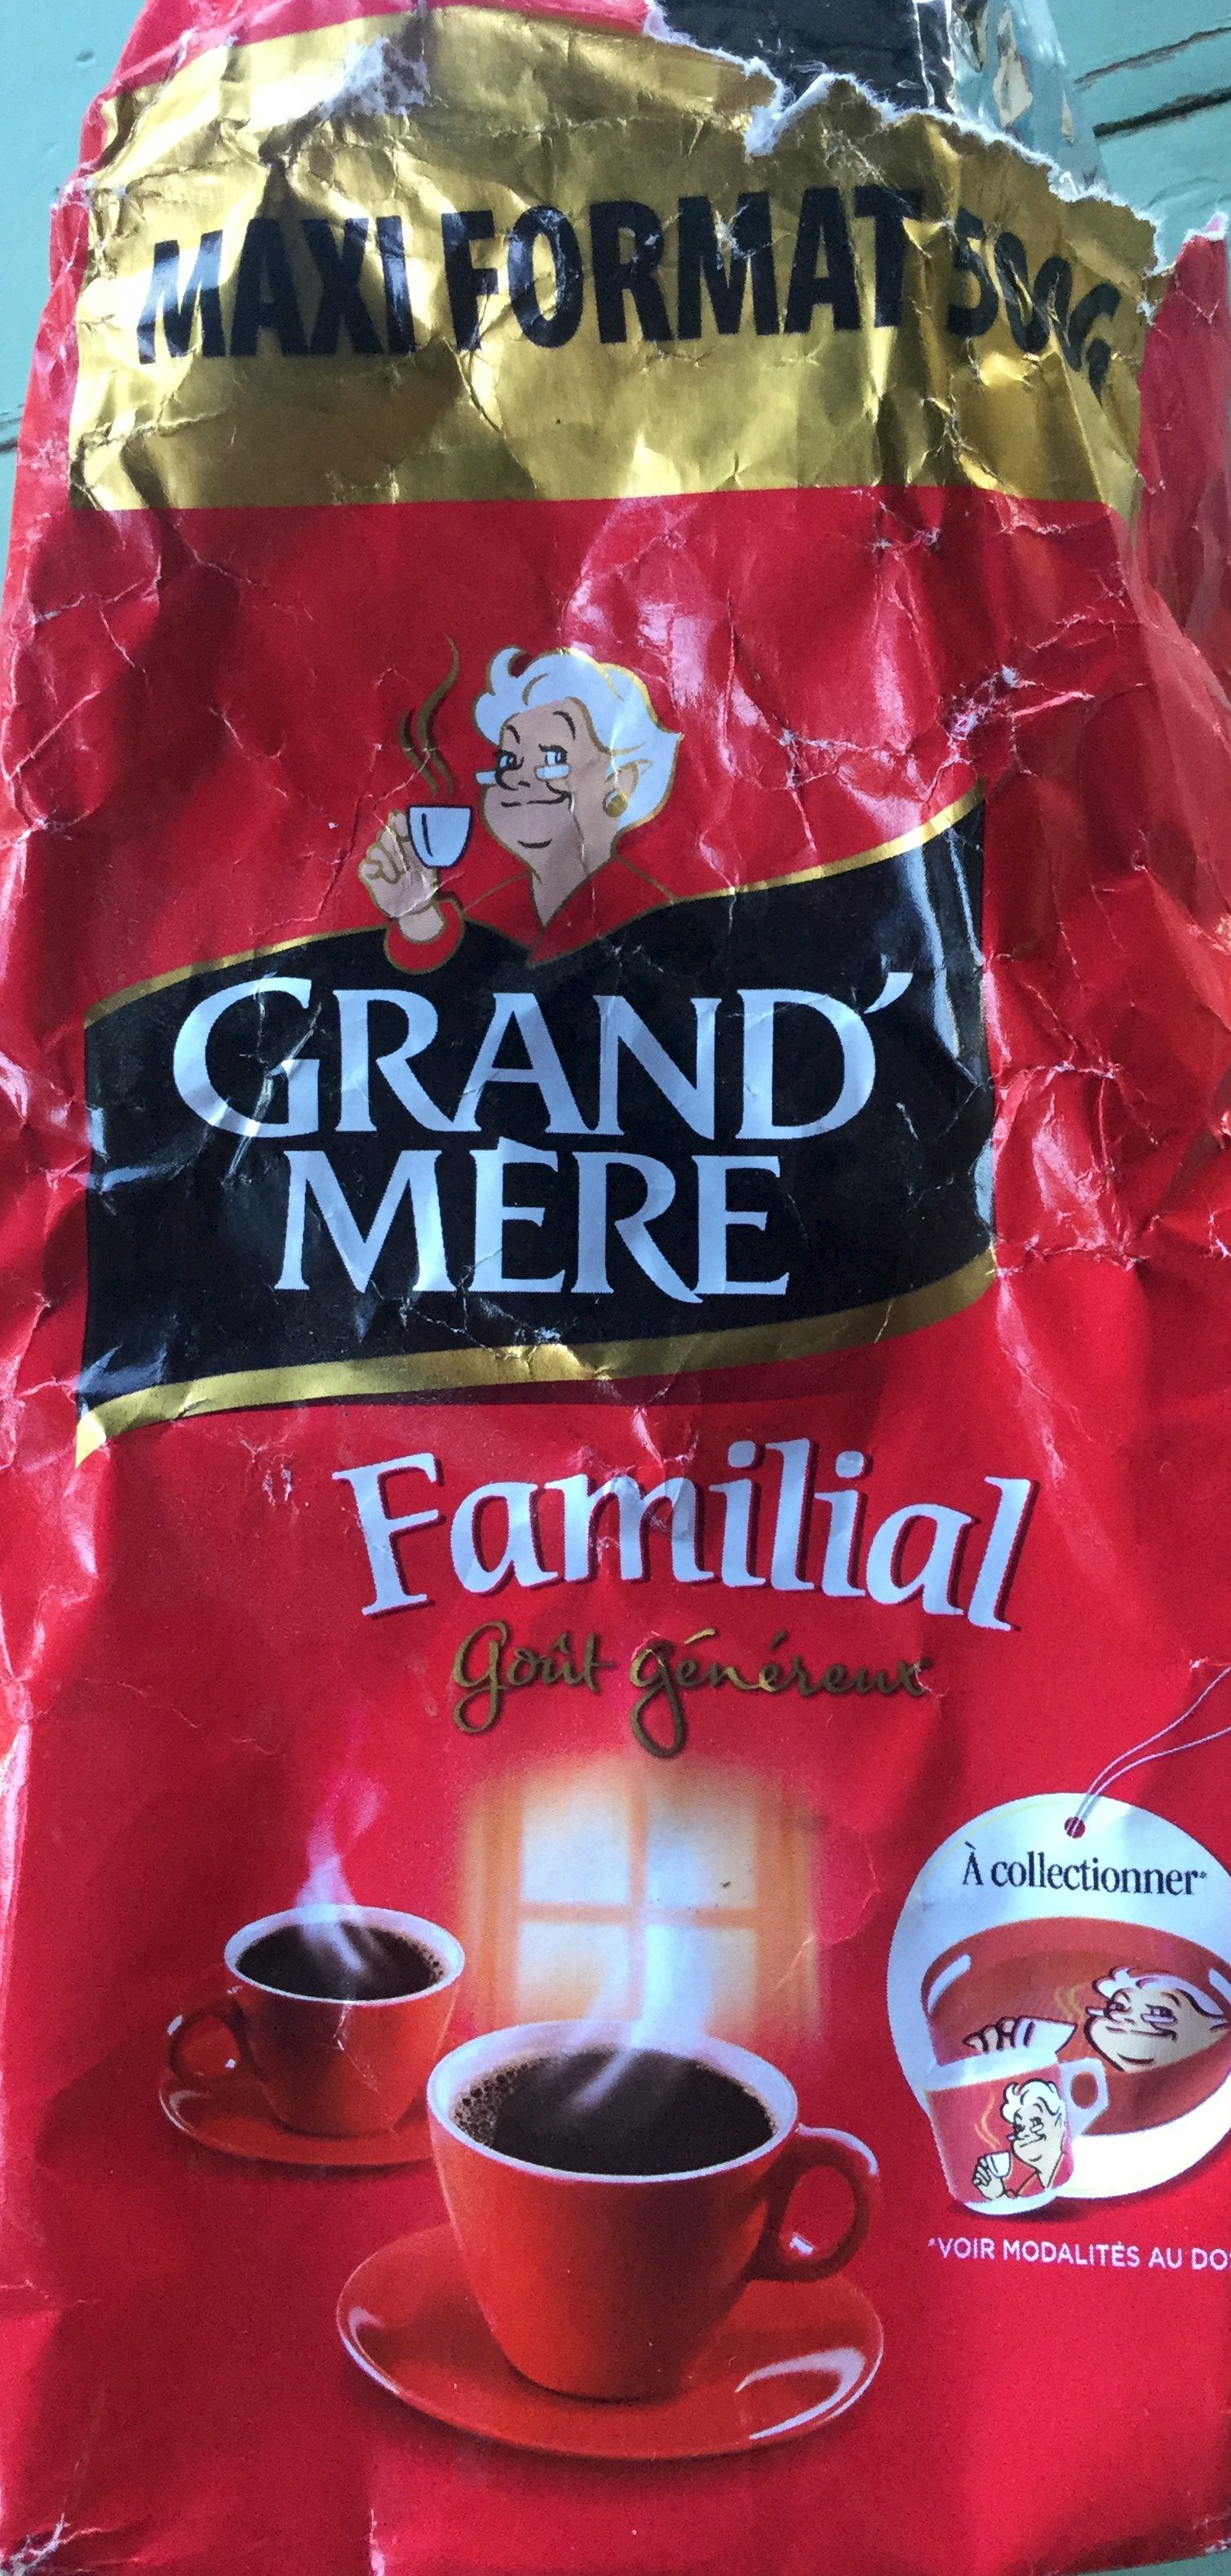 Familial - Product